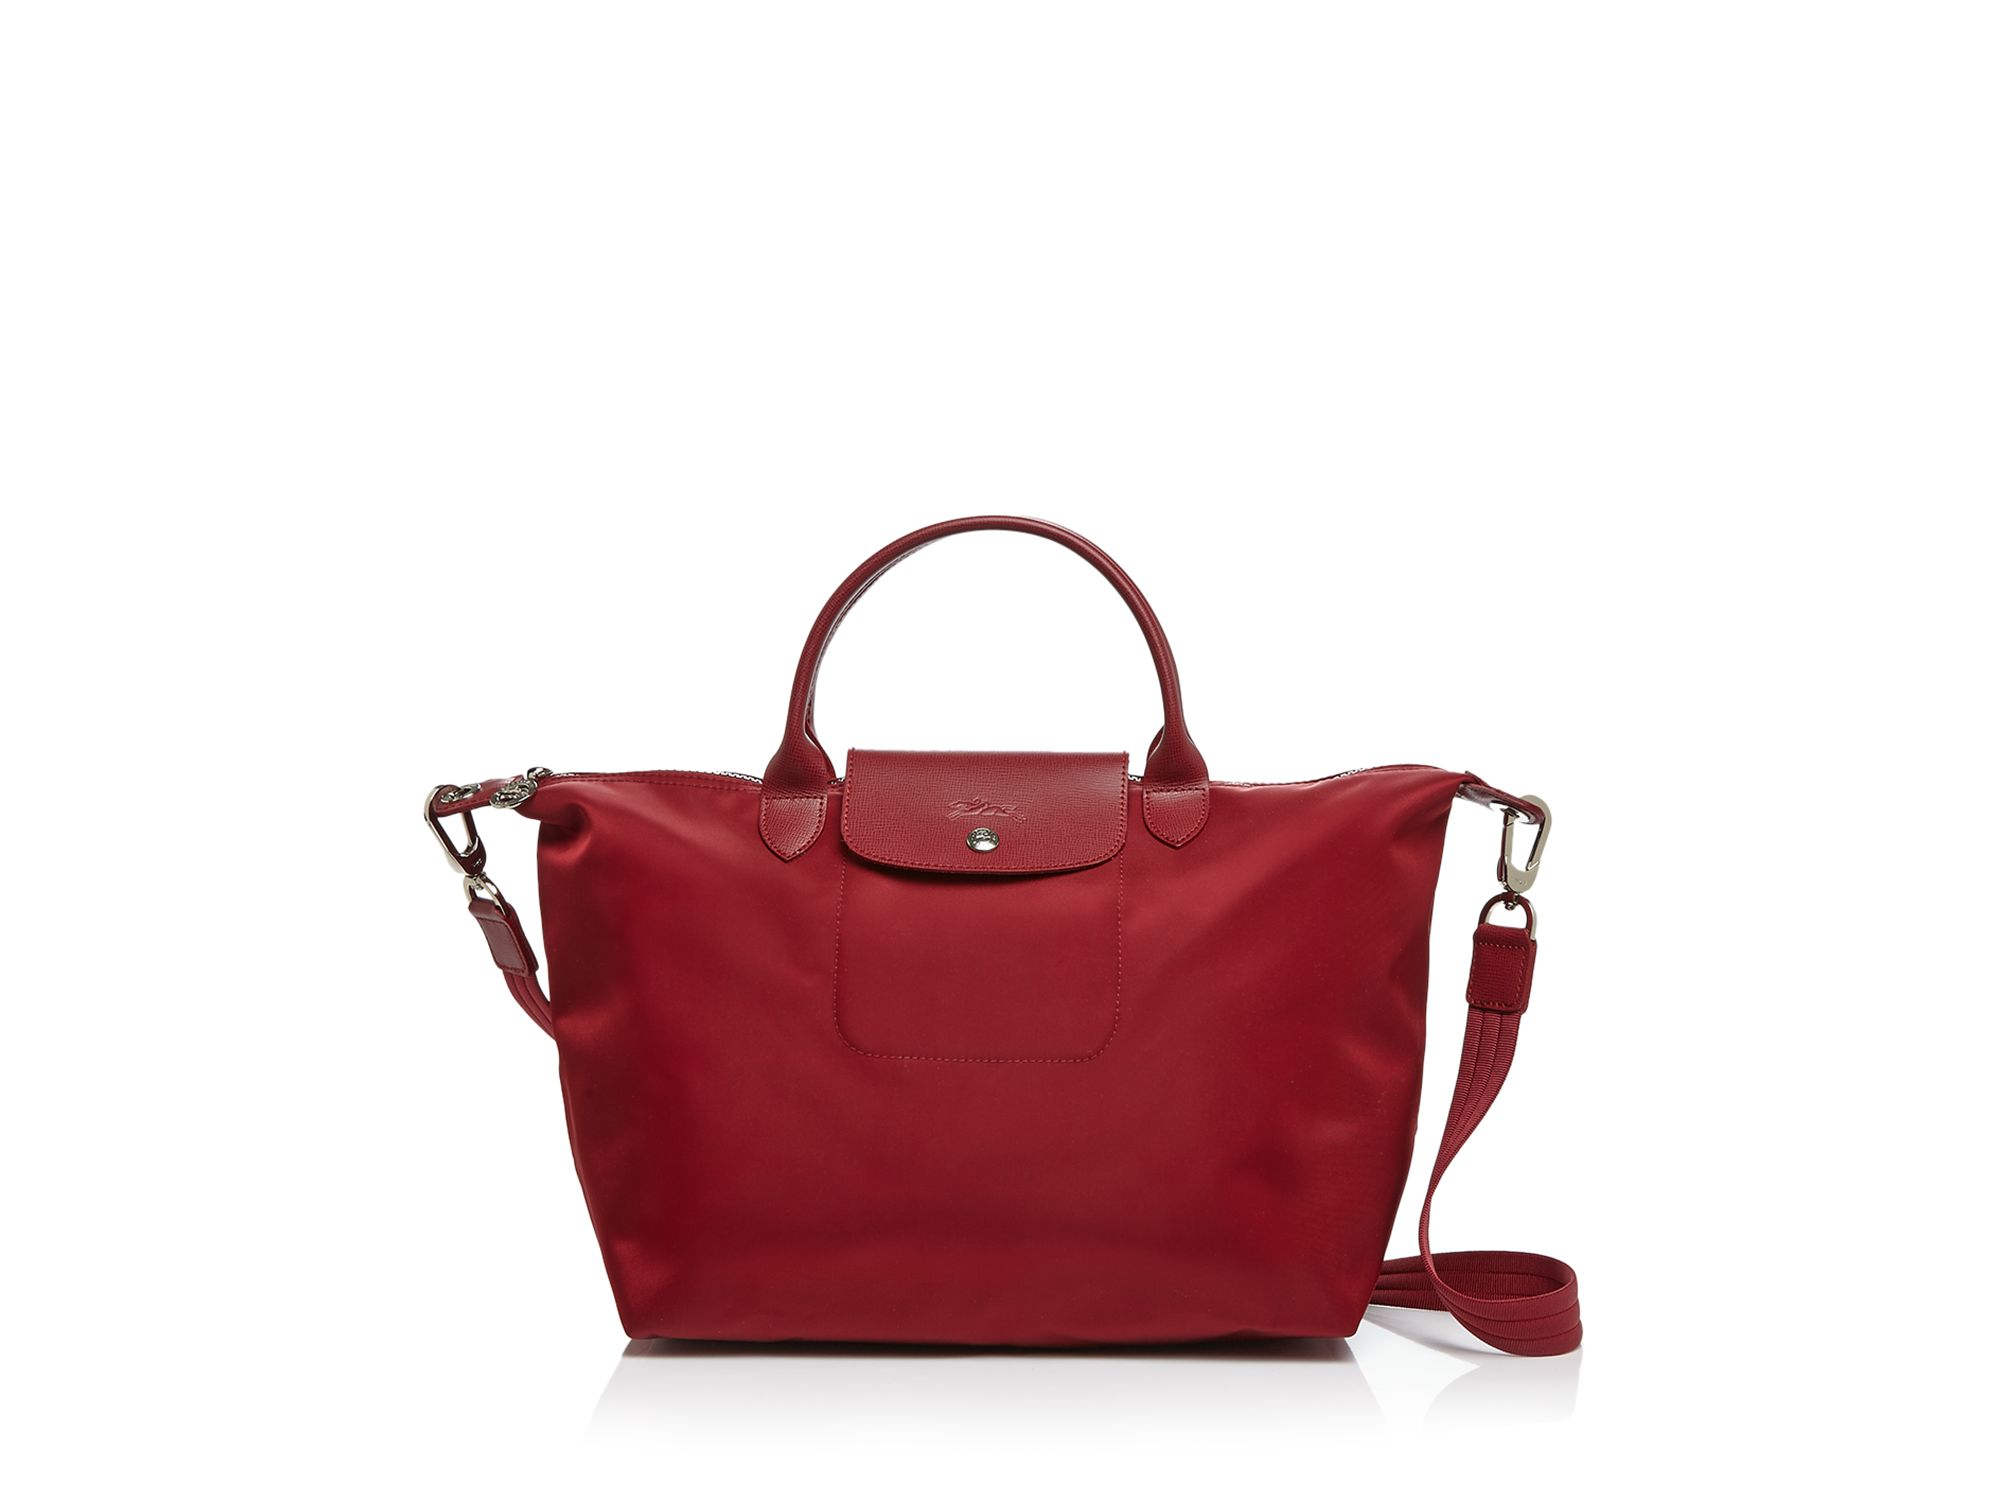 Longchamp Inspired Tote March 2017